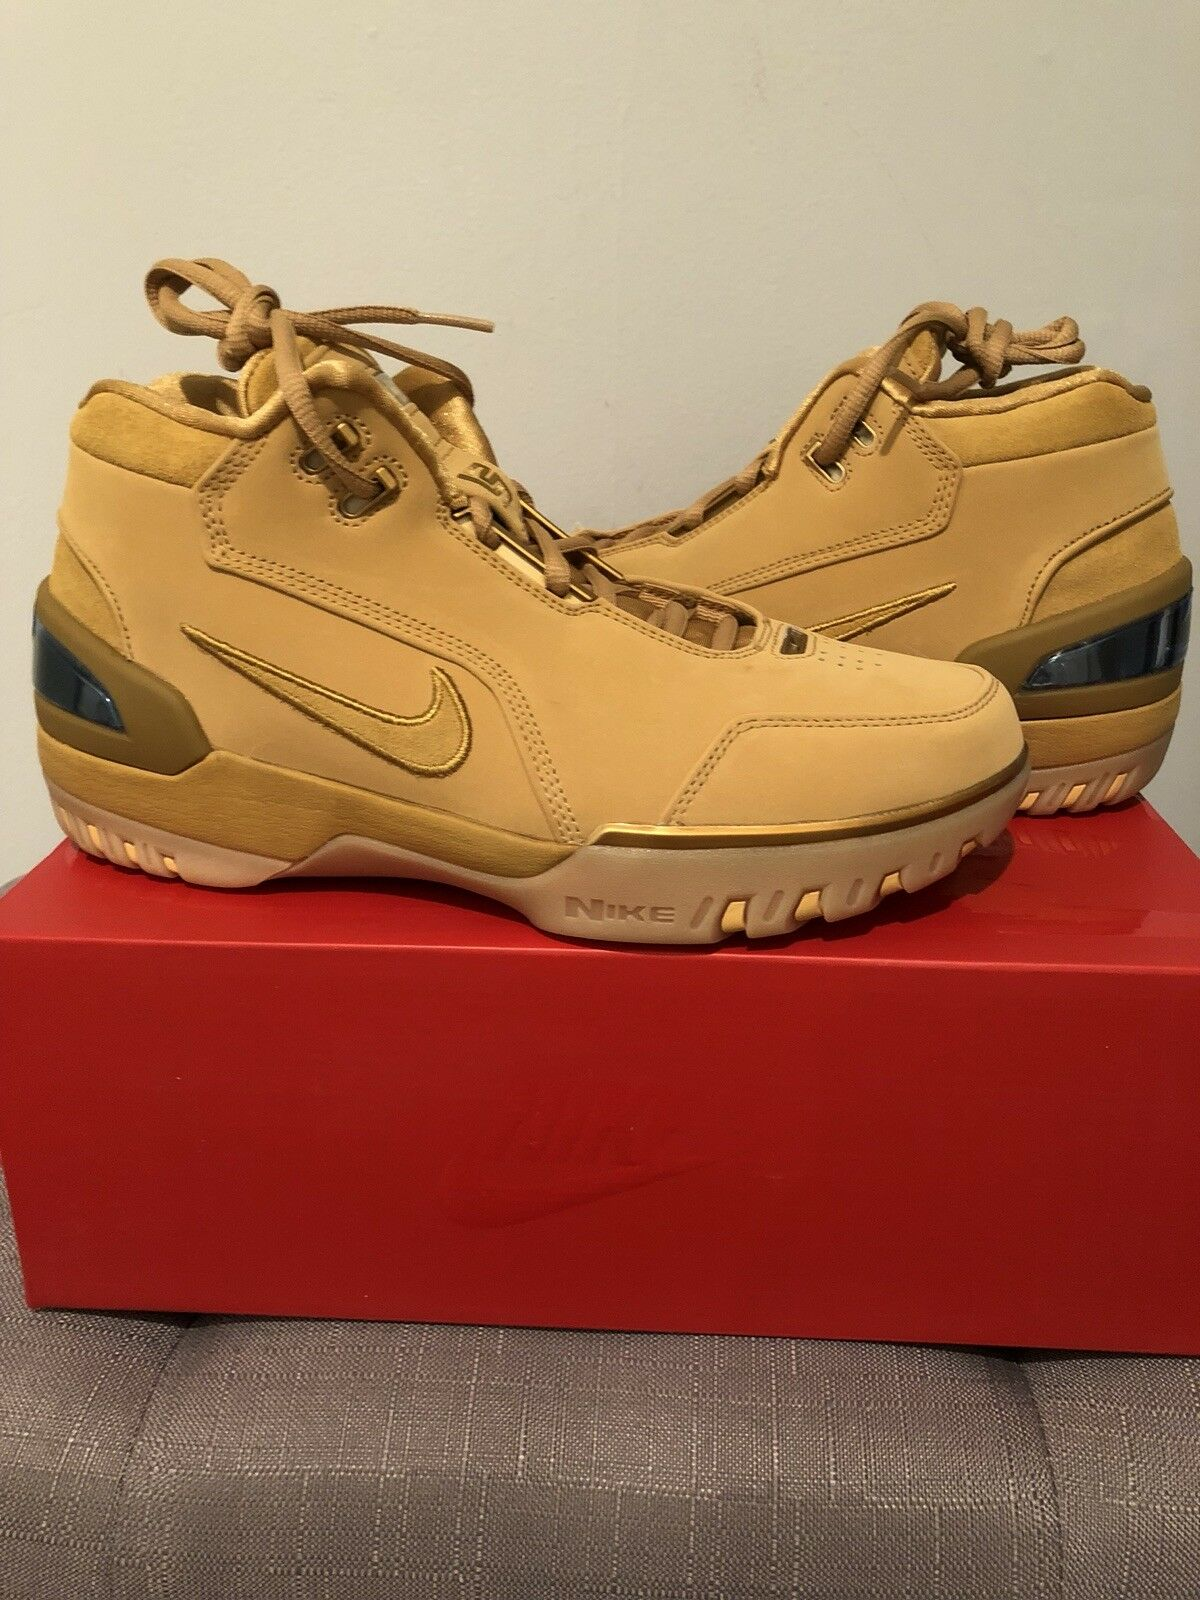 NIKE Air Zoom Generation Wheat size 8